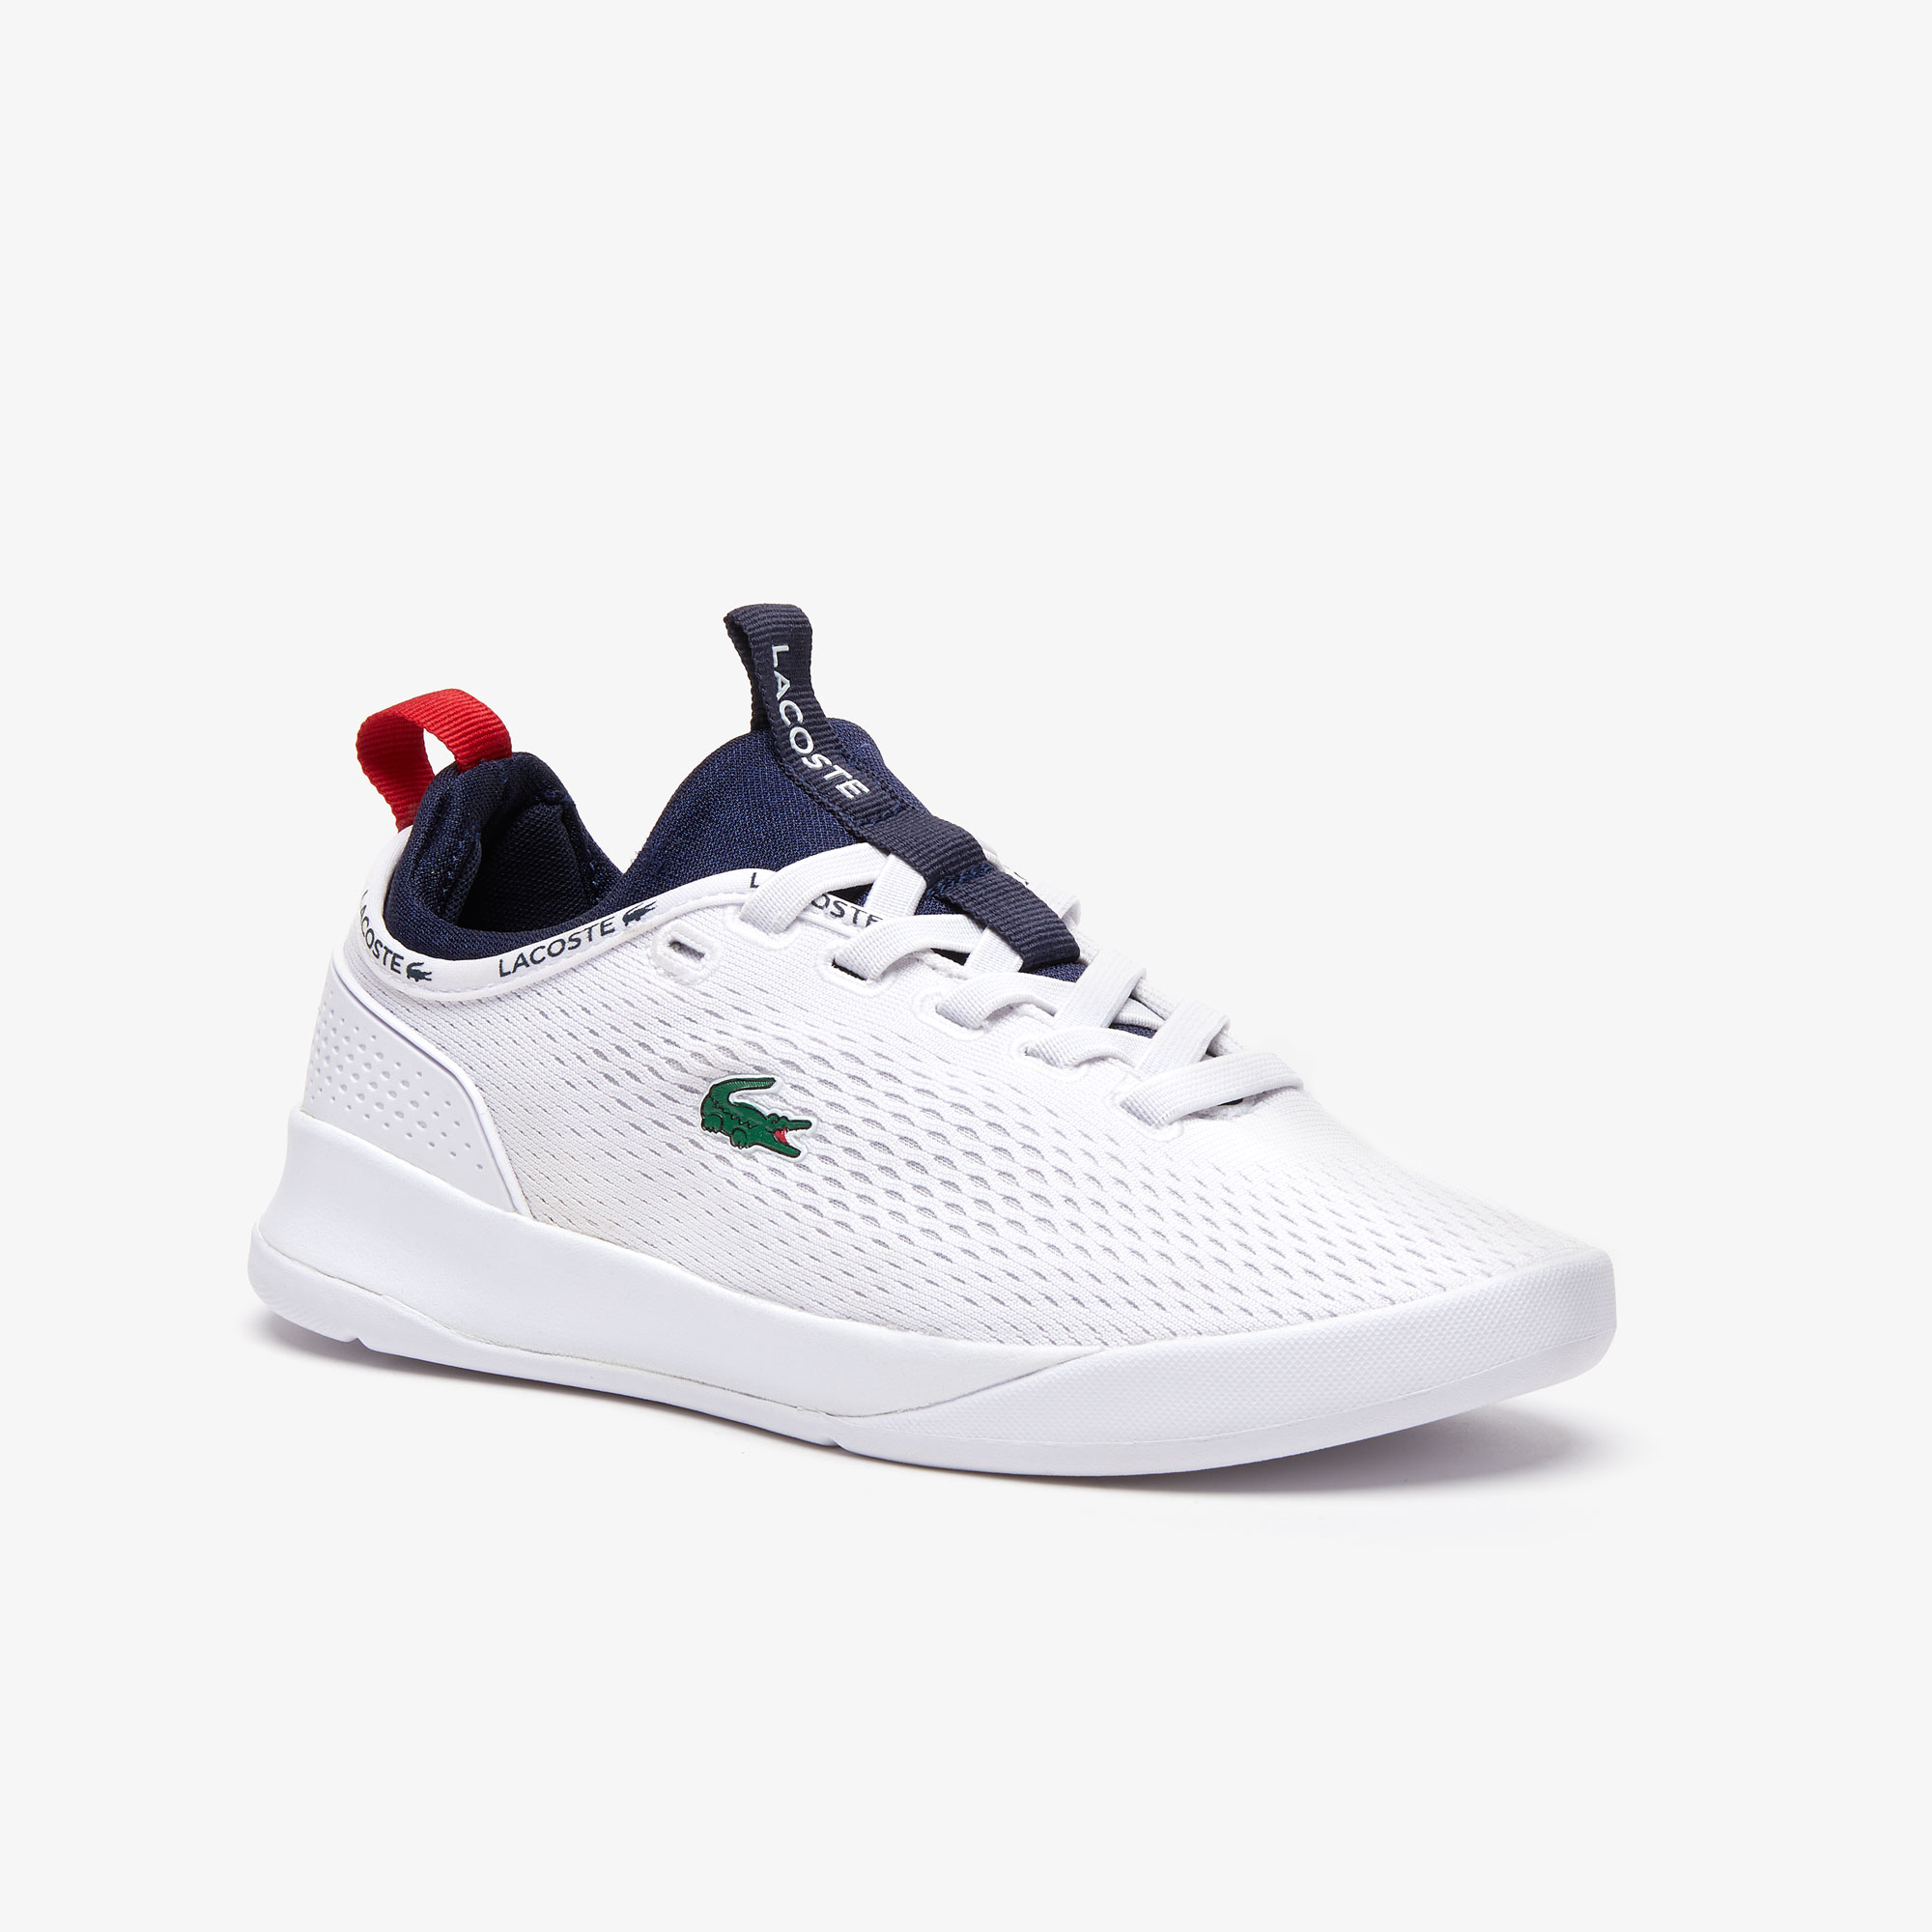 4666be4b34c6 Lacoste Shoes for Women